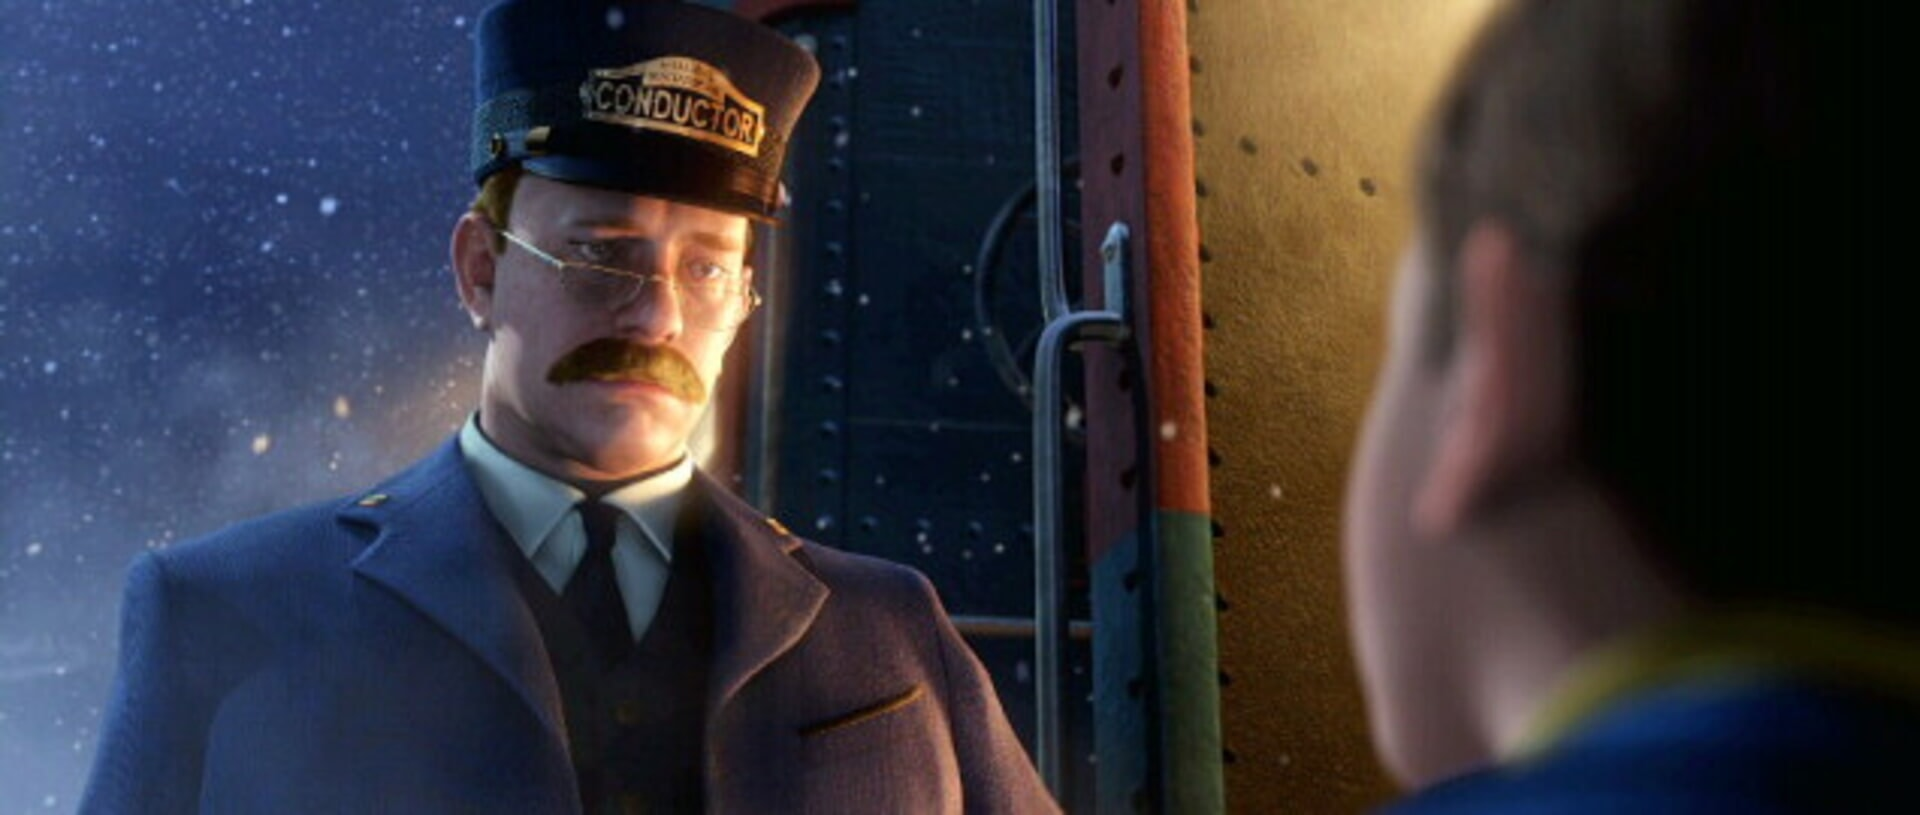 The Polar Express - Image 23